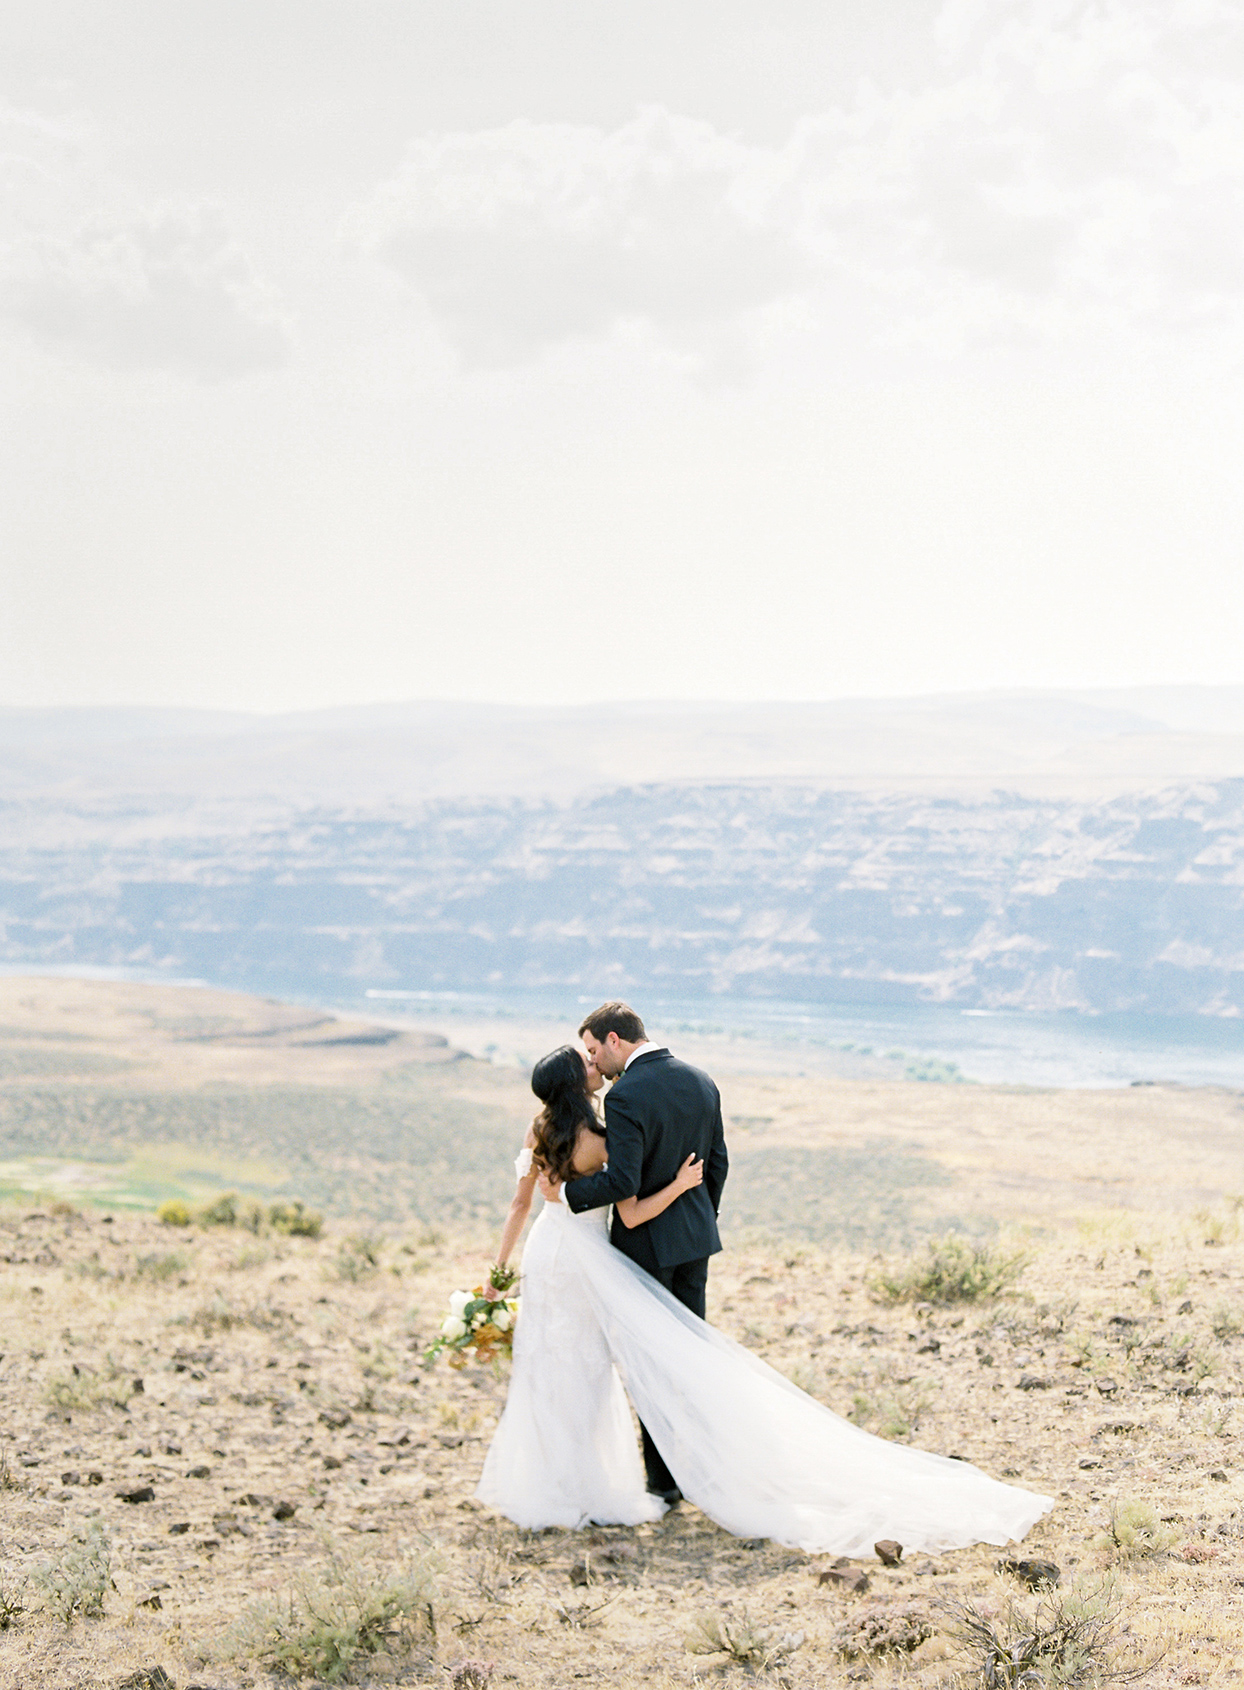 micaela curtis wedding couple kissing in field